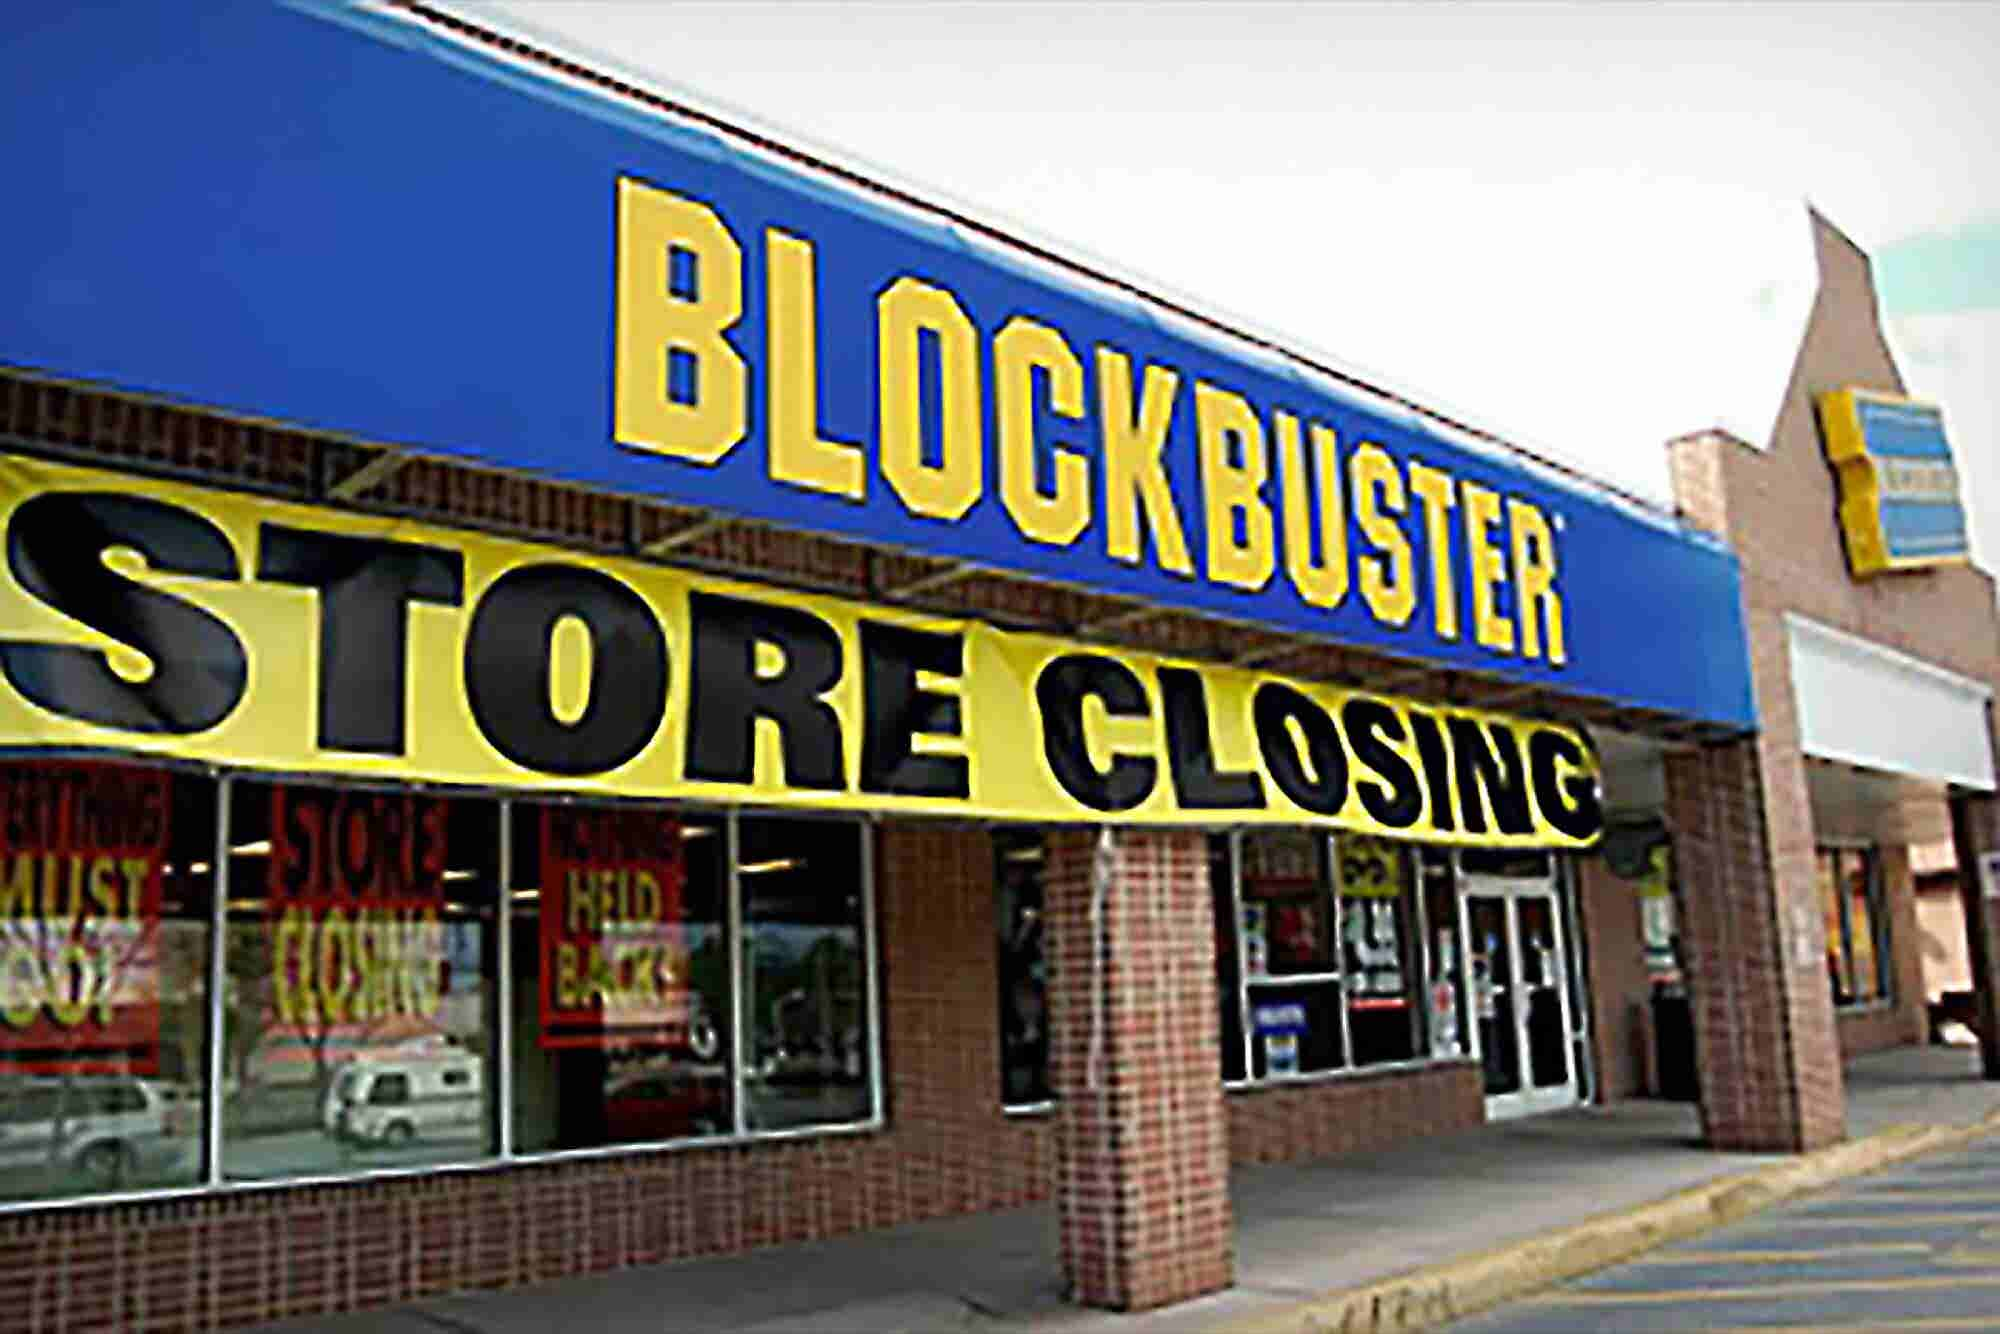 The Fall of a Franchise: Blockbuster and 5 Other Chains That Went Bust